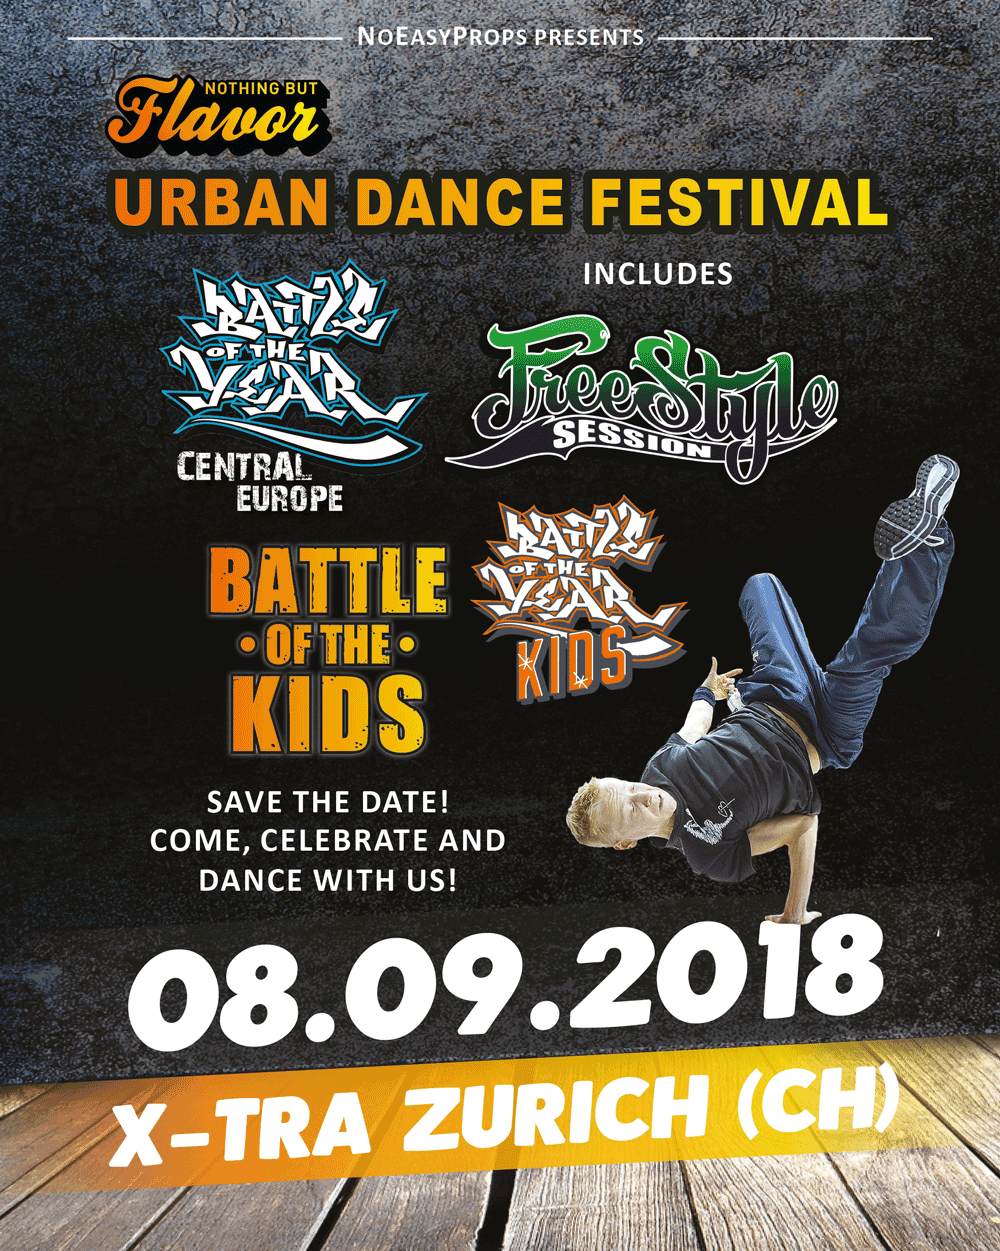 NOTHING BUT FLAVOR– Urban Dance Festival